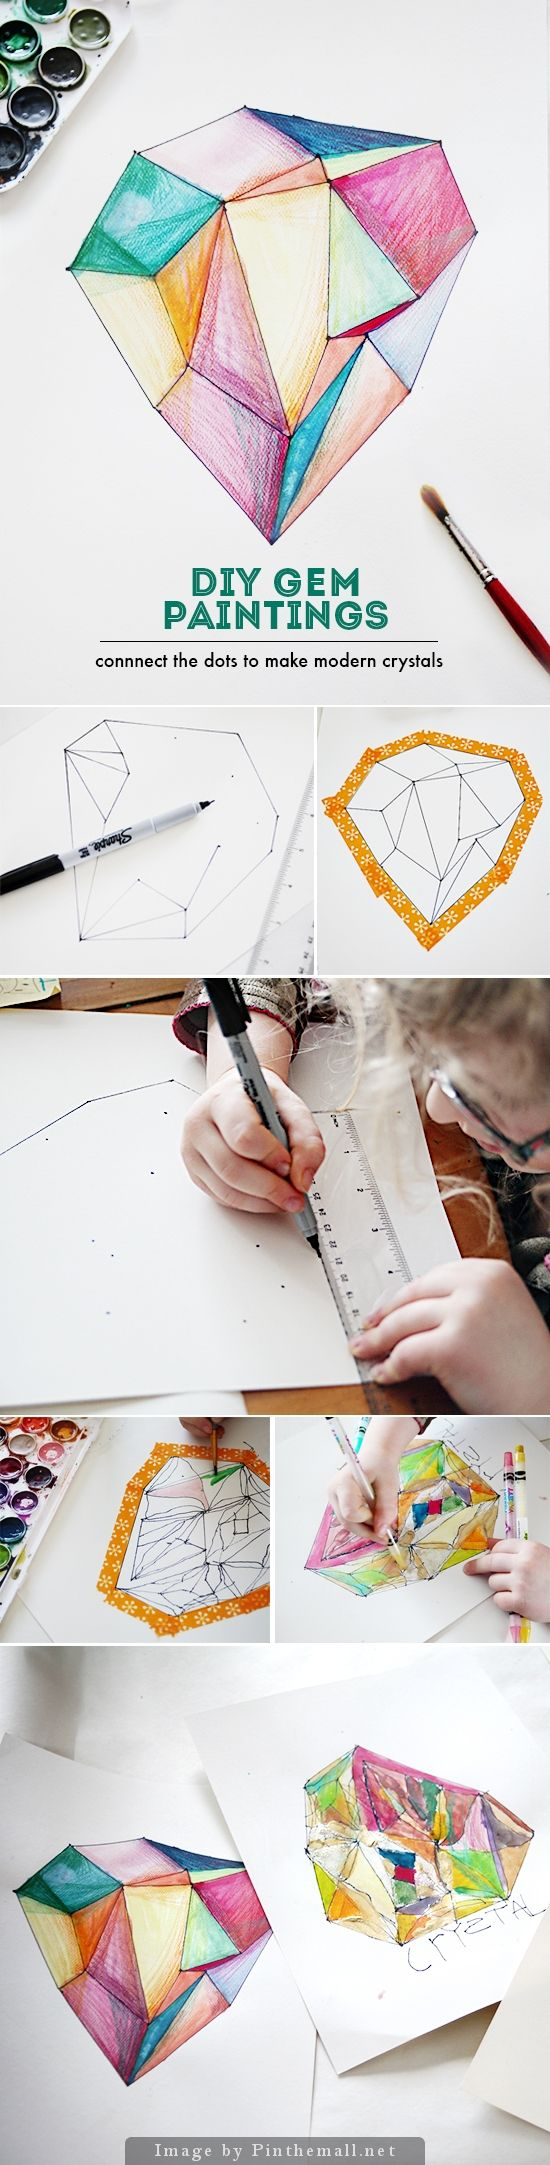 crystal gem watercolor paintings for kids: This project is fun. From the mystery of turning dots into shapes, to mixing the watercolors, to playing with the layered effects of colored pencils, there are lots of surprises to be had. It all begins by connecting the dots – are you ready?